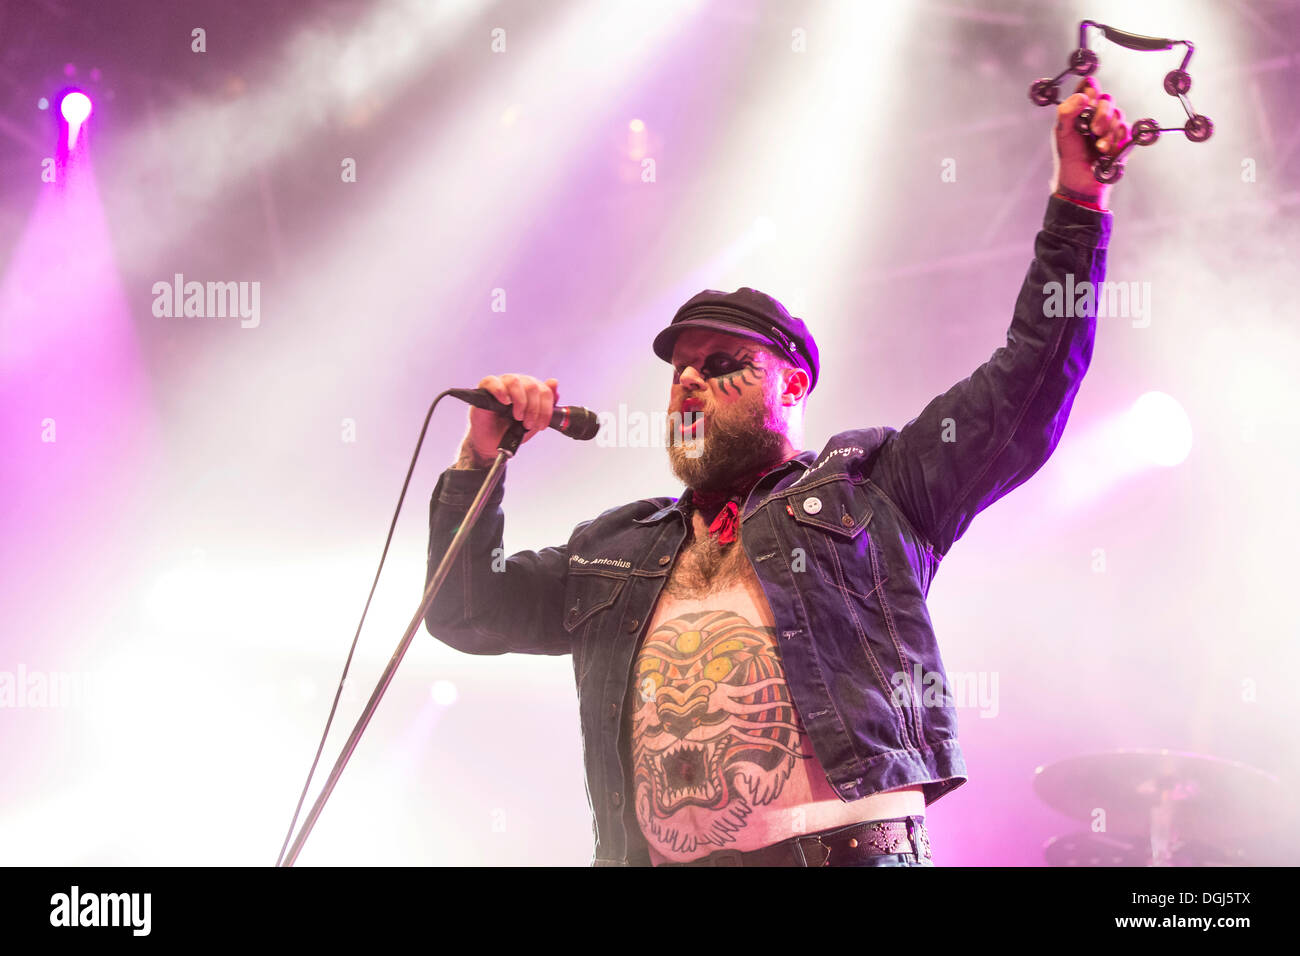 Singer and frontman Tony Sylvester from the Norwegian heavy metal, rock and punk band Turbonegro performing live at Heitere Open - Stock Image